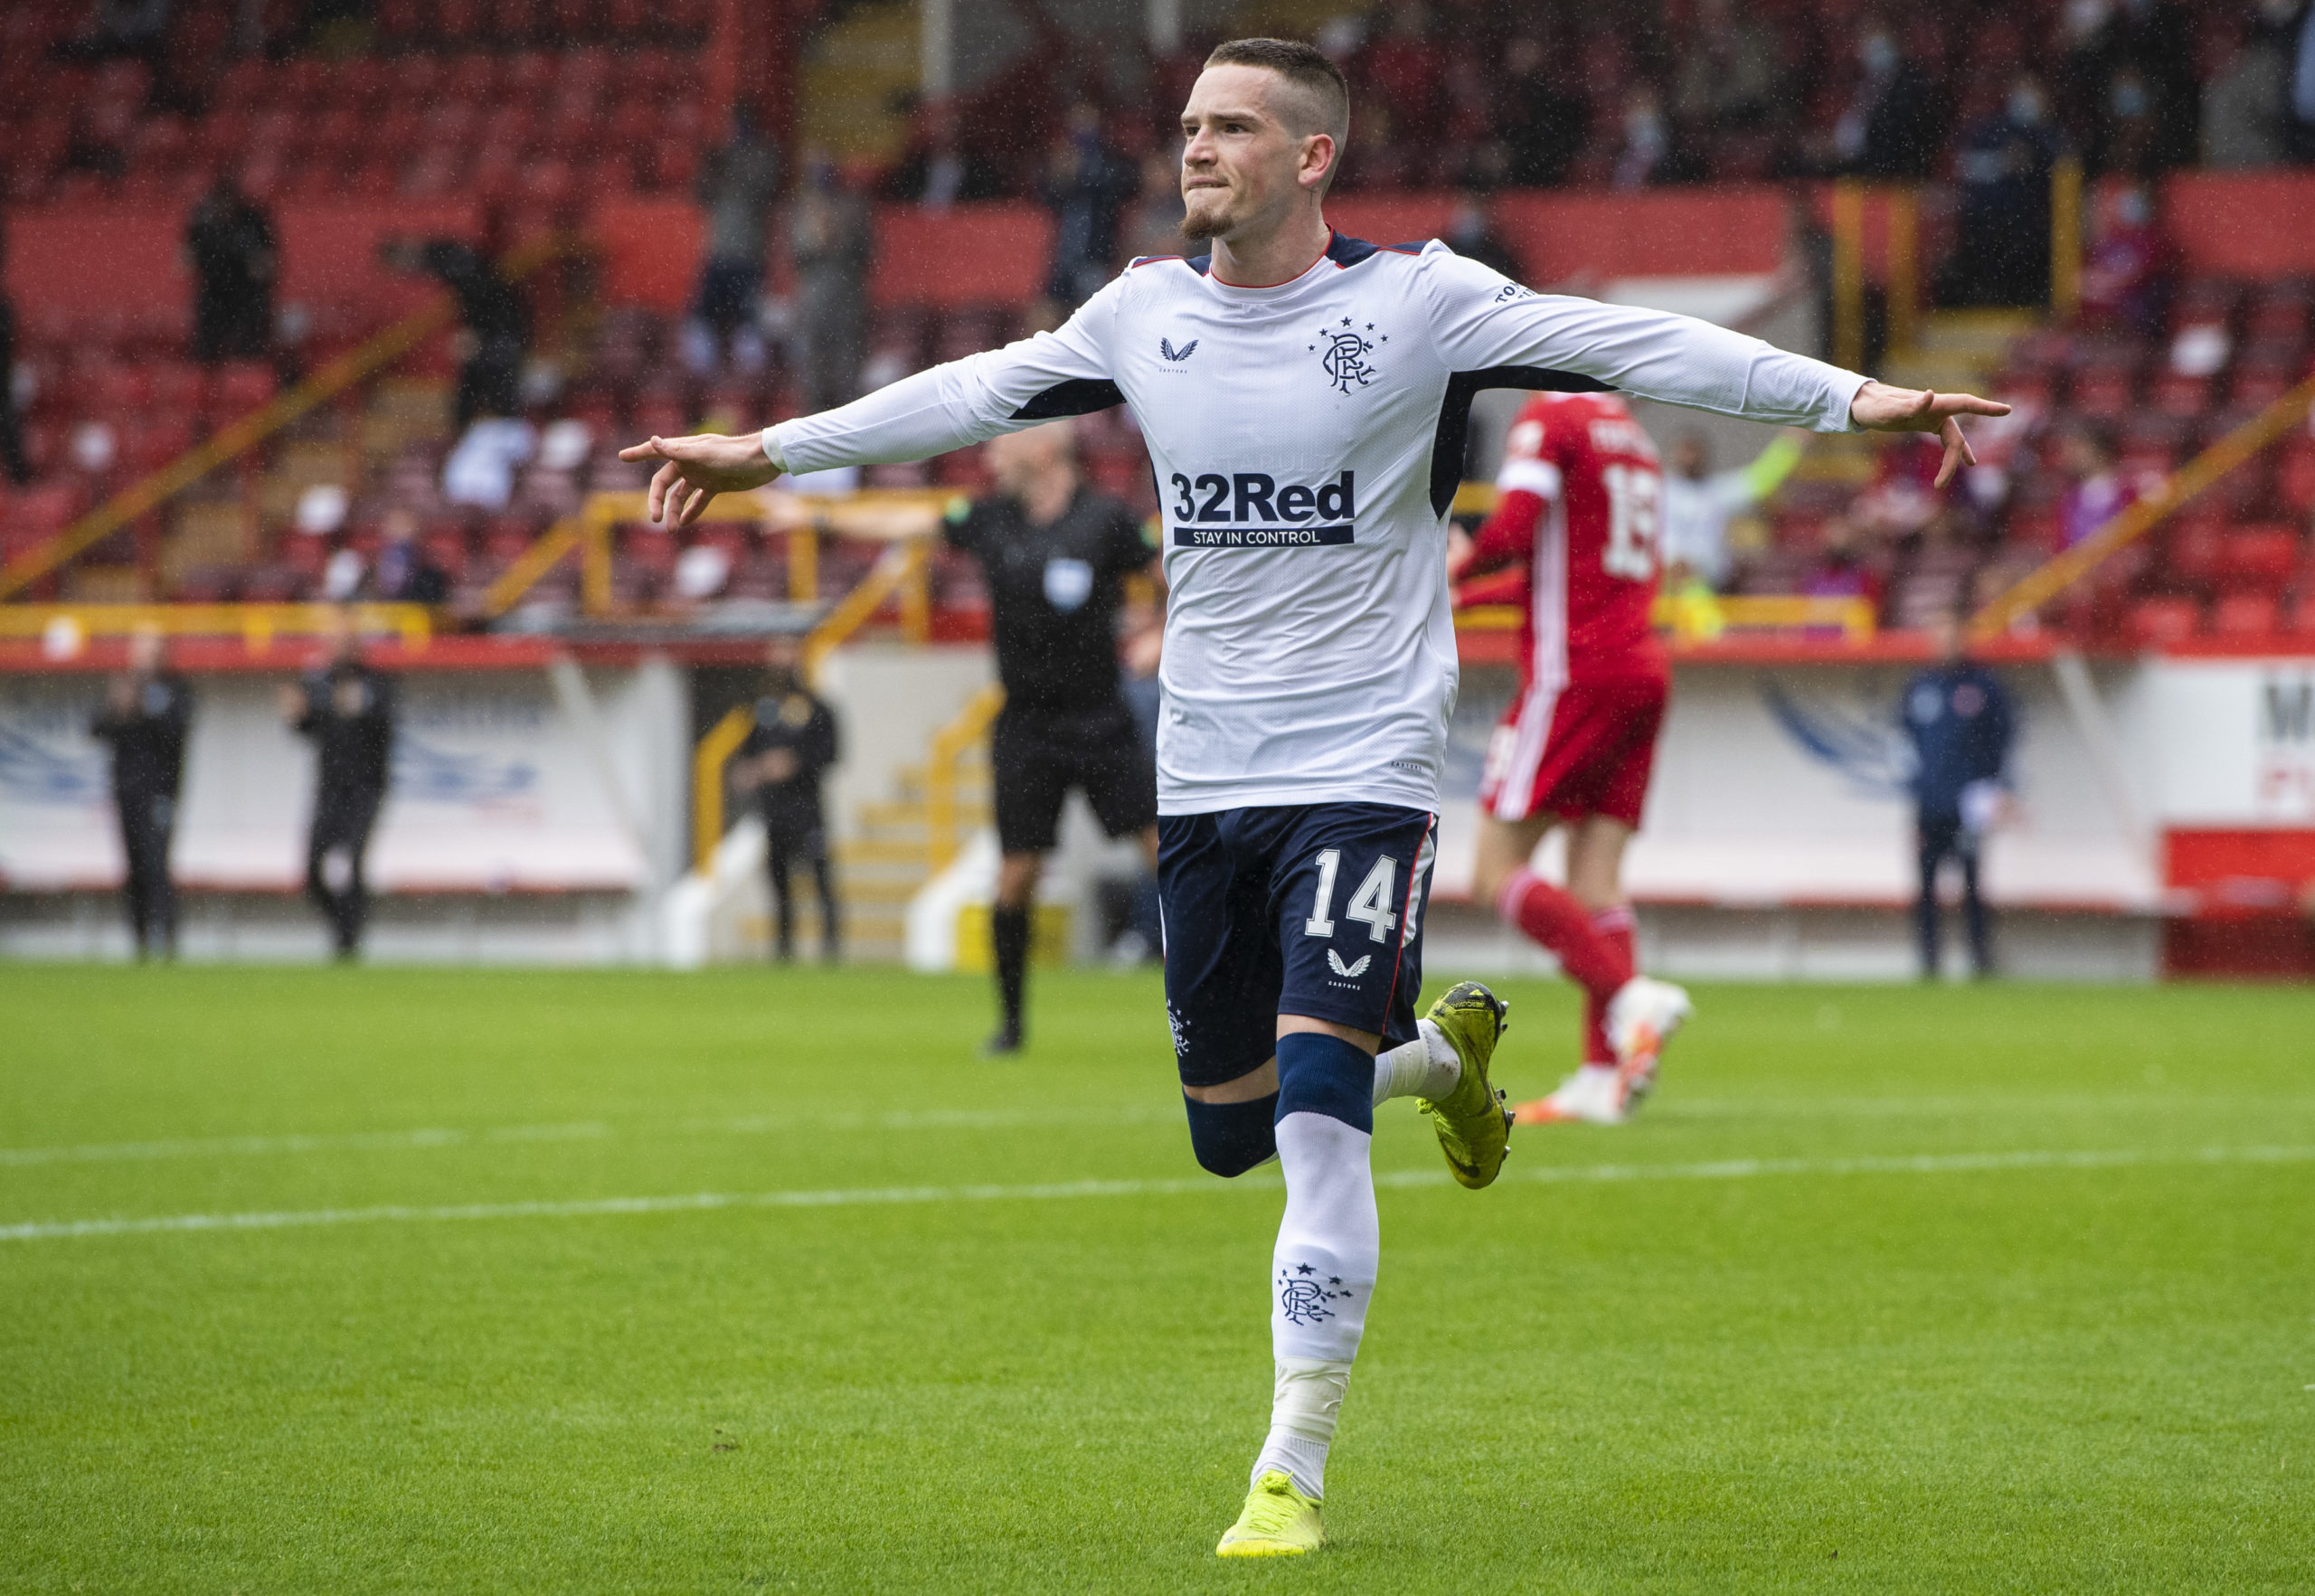 ABERDEEN, SCOTLAND - AUGUST 01: Rangers' Ryan Kent celebrates making it 1-0 during the Scottish Premiership match between Aberdeen and Rangers at Pittodrie on August 01, 2020, in Aberdeen, Scotland.